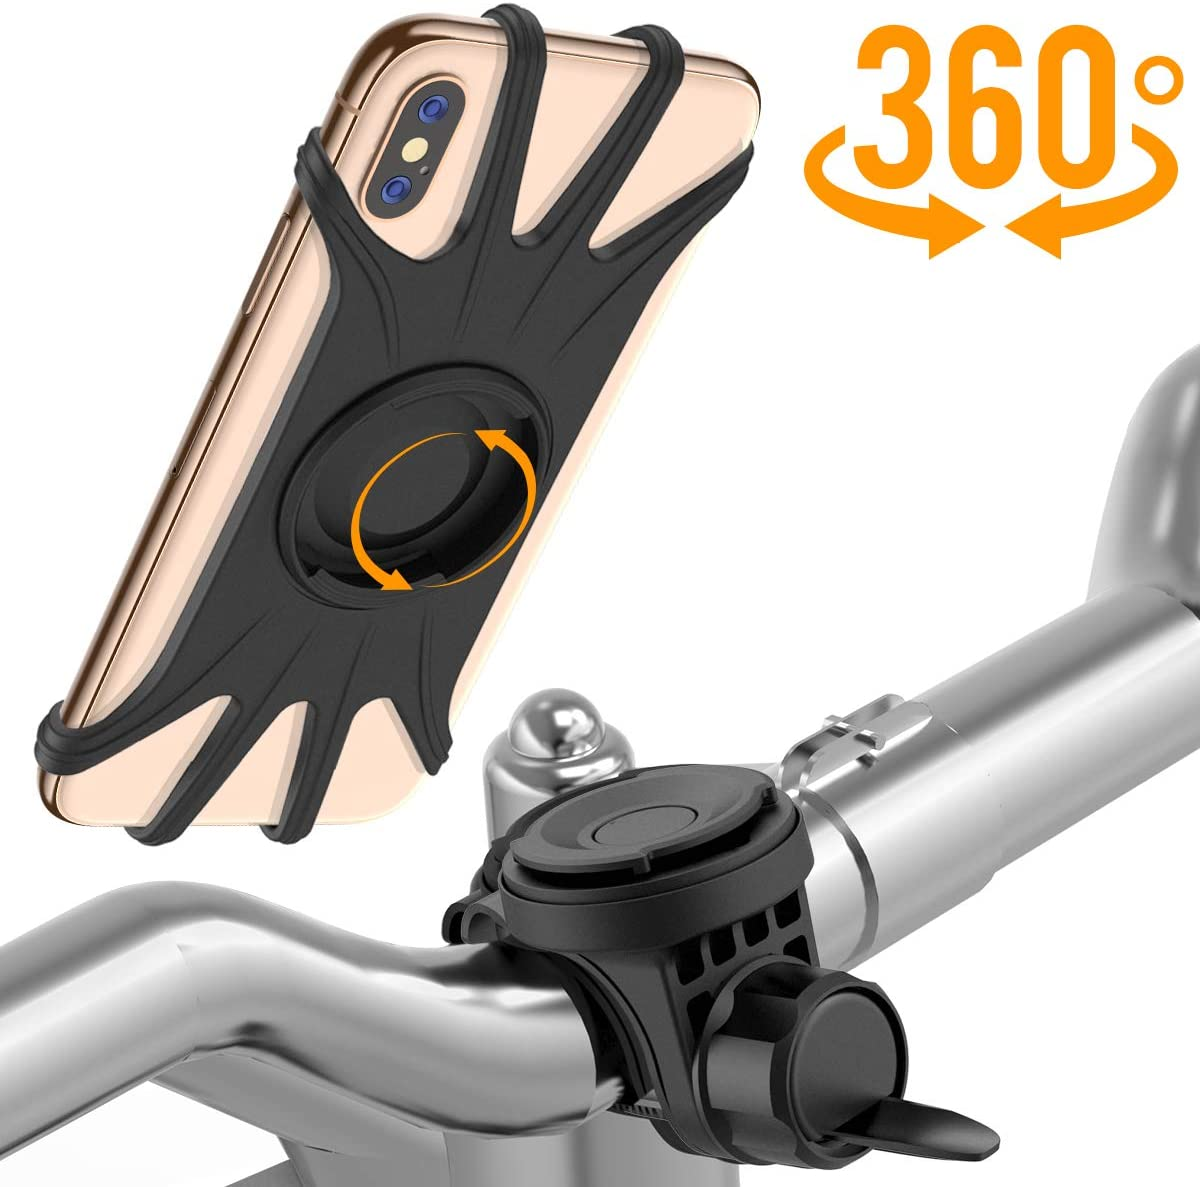 Miracase Universal Bike Phone Mount, Detachable 360 Rotation Cell Phone Holder for Bicycle Motorcycle, Compatible with iPhone XS Max iPhone XR Samsung Galaxy S10 Plus LG MOTO Google Smartphone (Black)